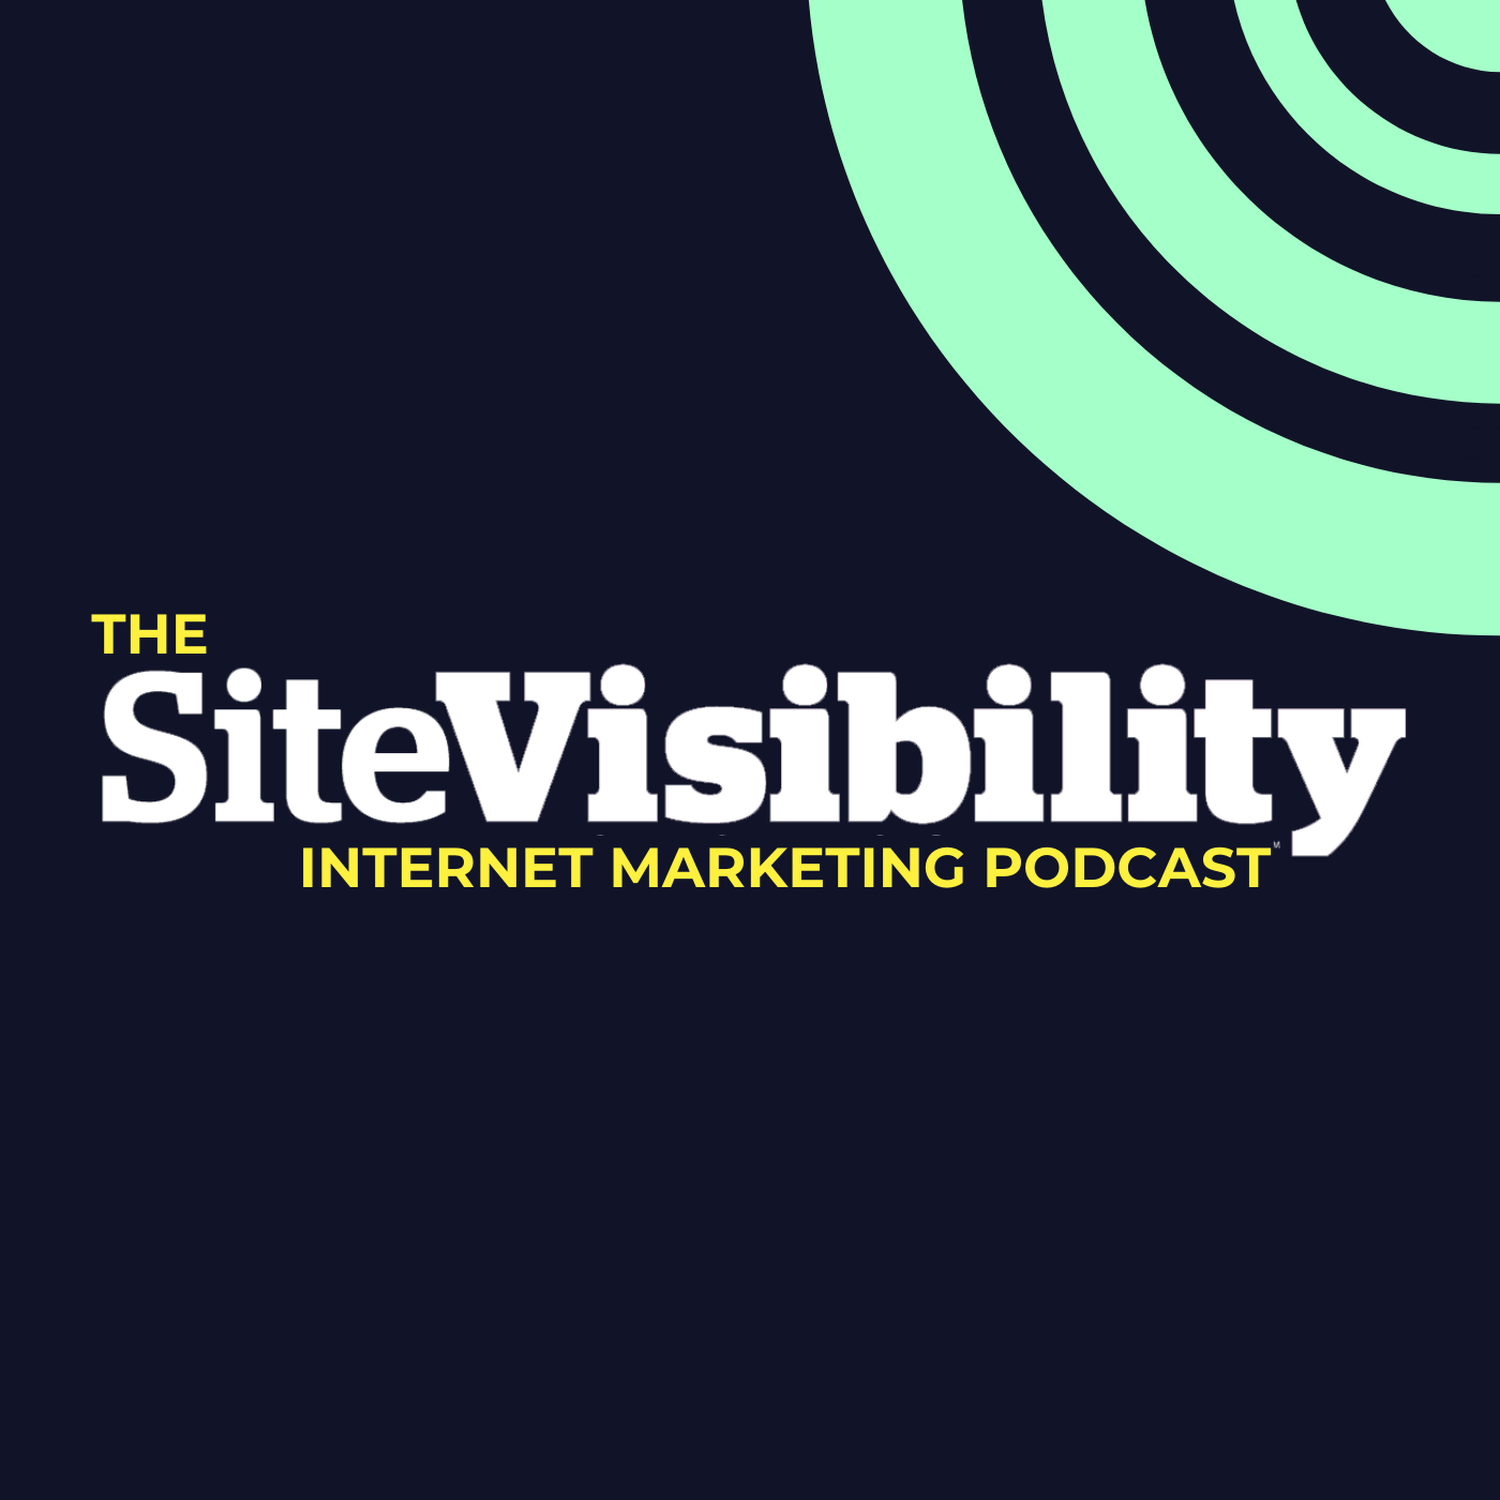 The SiteVisibility Internet Marketing Podcast